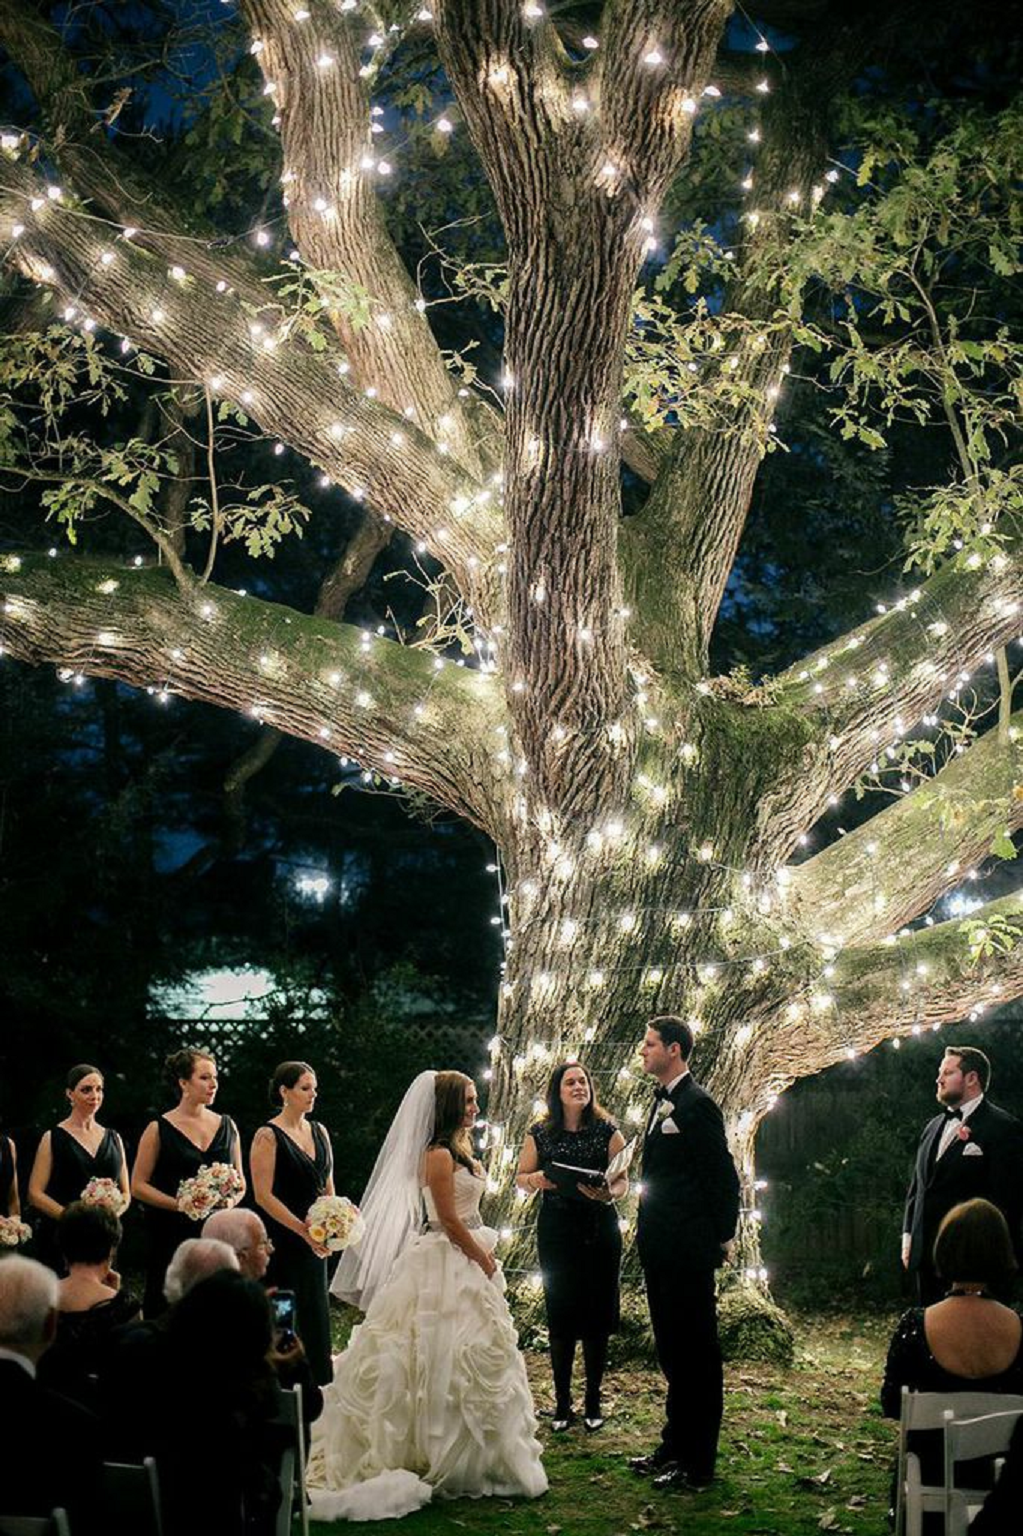 Bling wedding receptions Utterly Whimsical Night Under the Moon While You Exchange Your Vowes